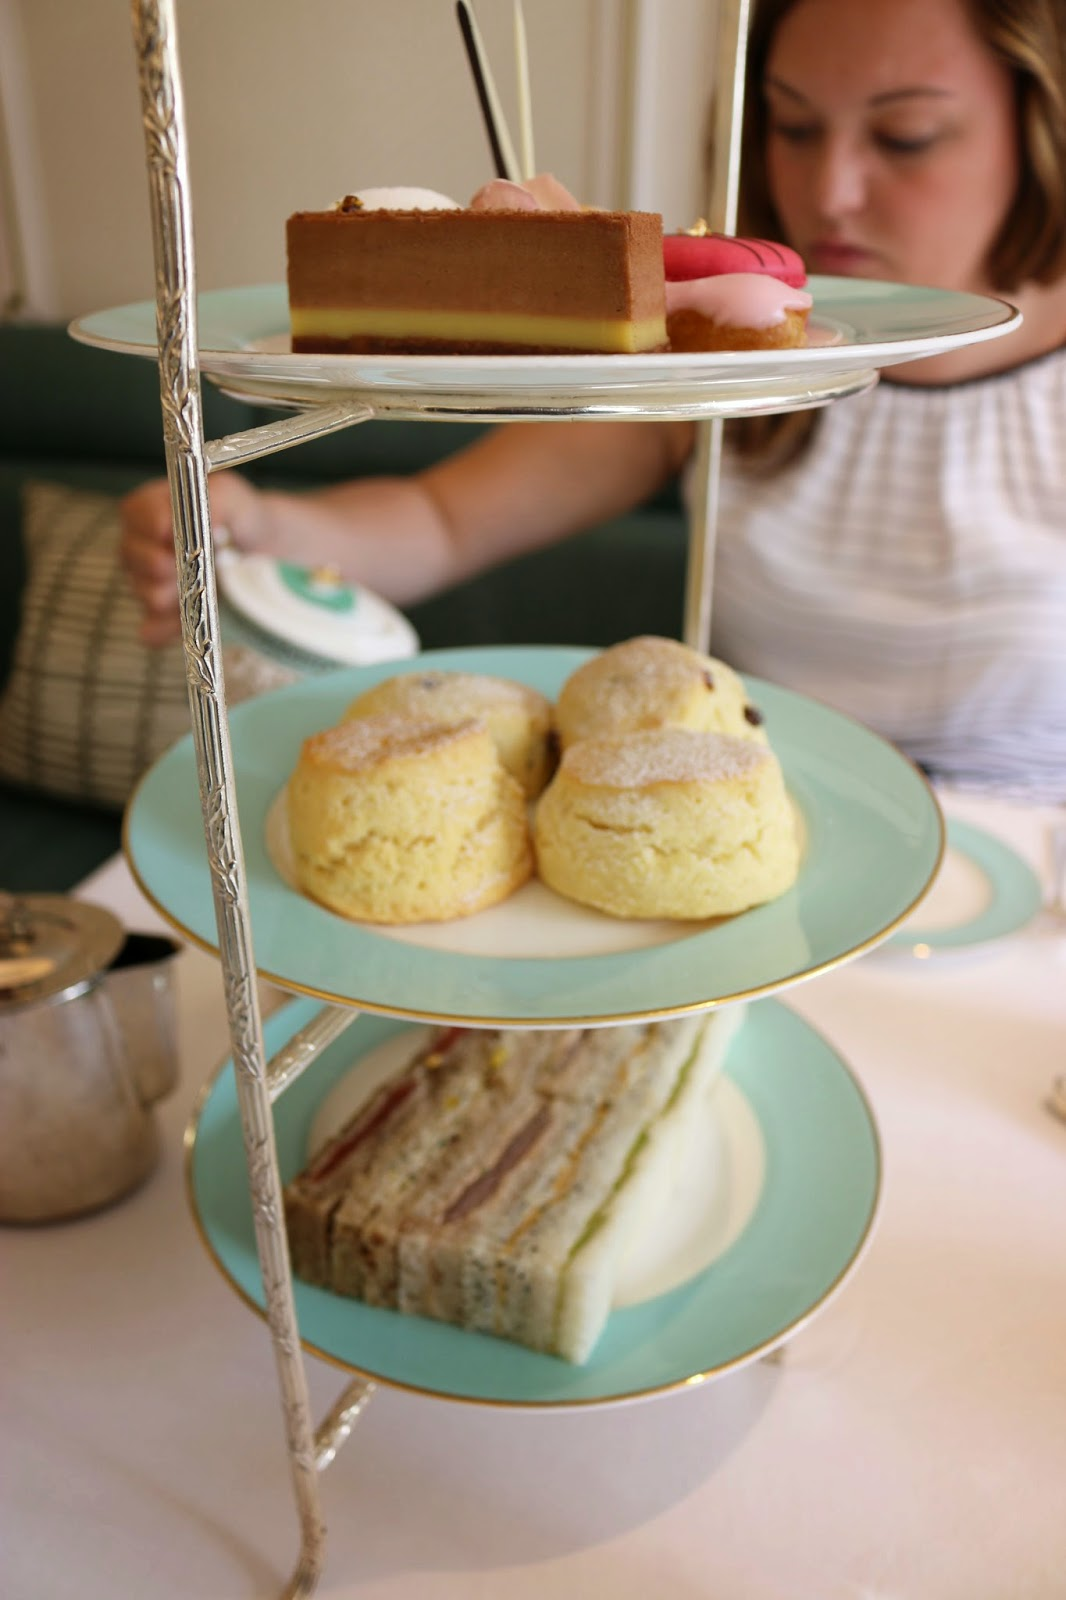 Fortnum & Mason Diamond Jubilee Tea Salon - Finger Sandwiches and Pastries